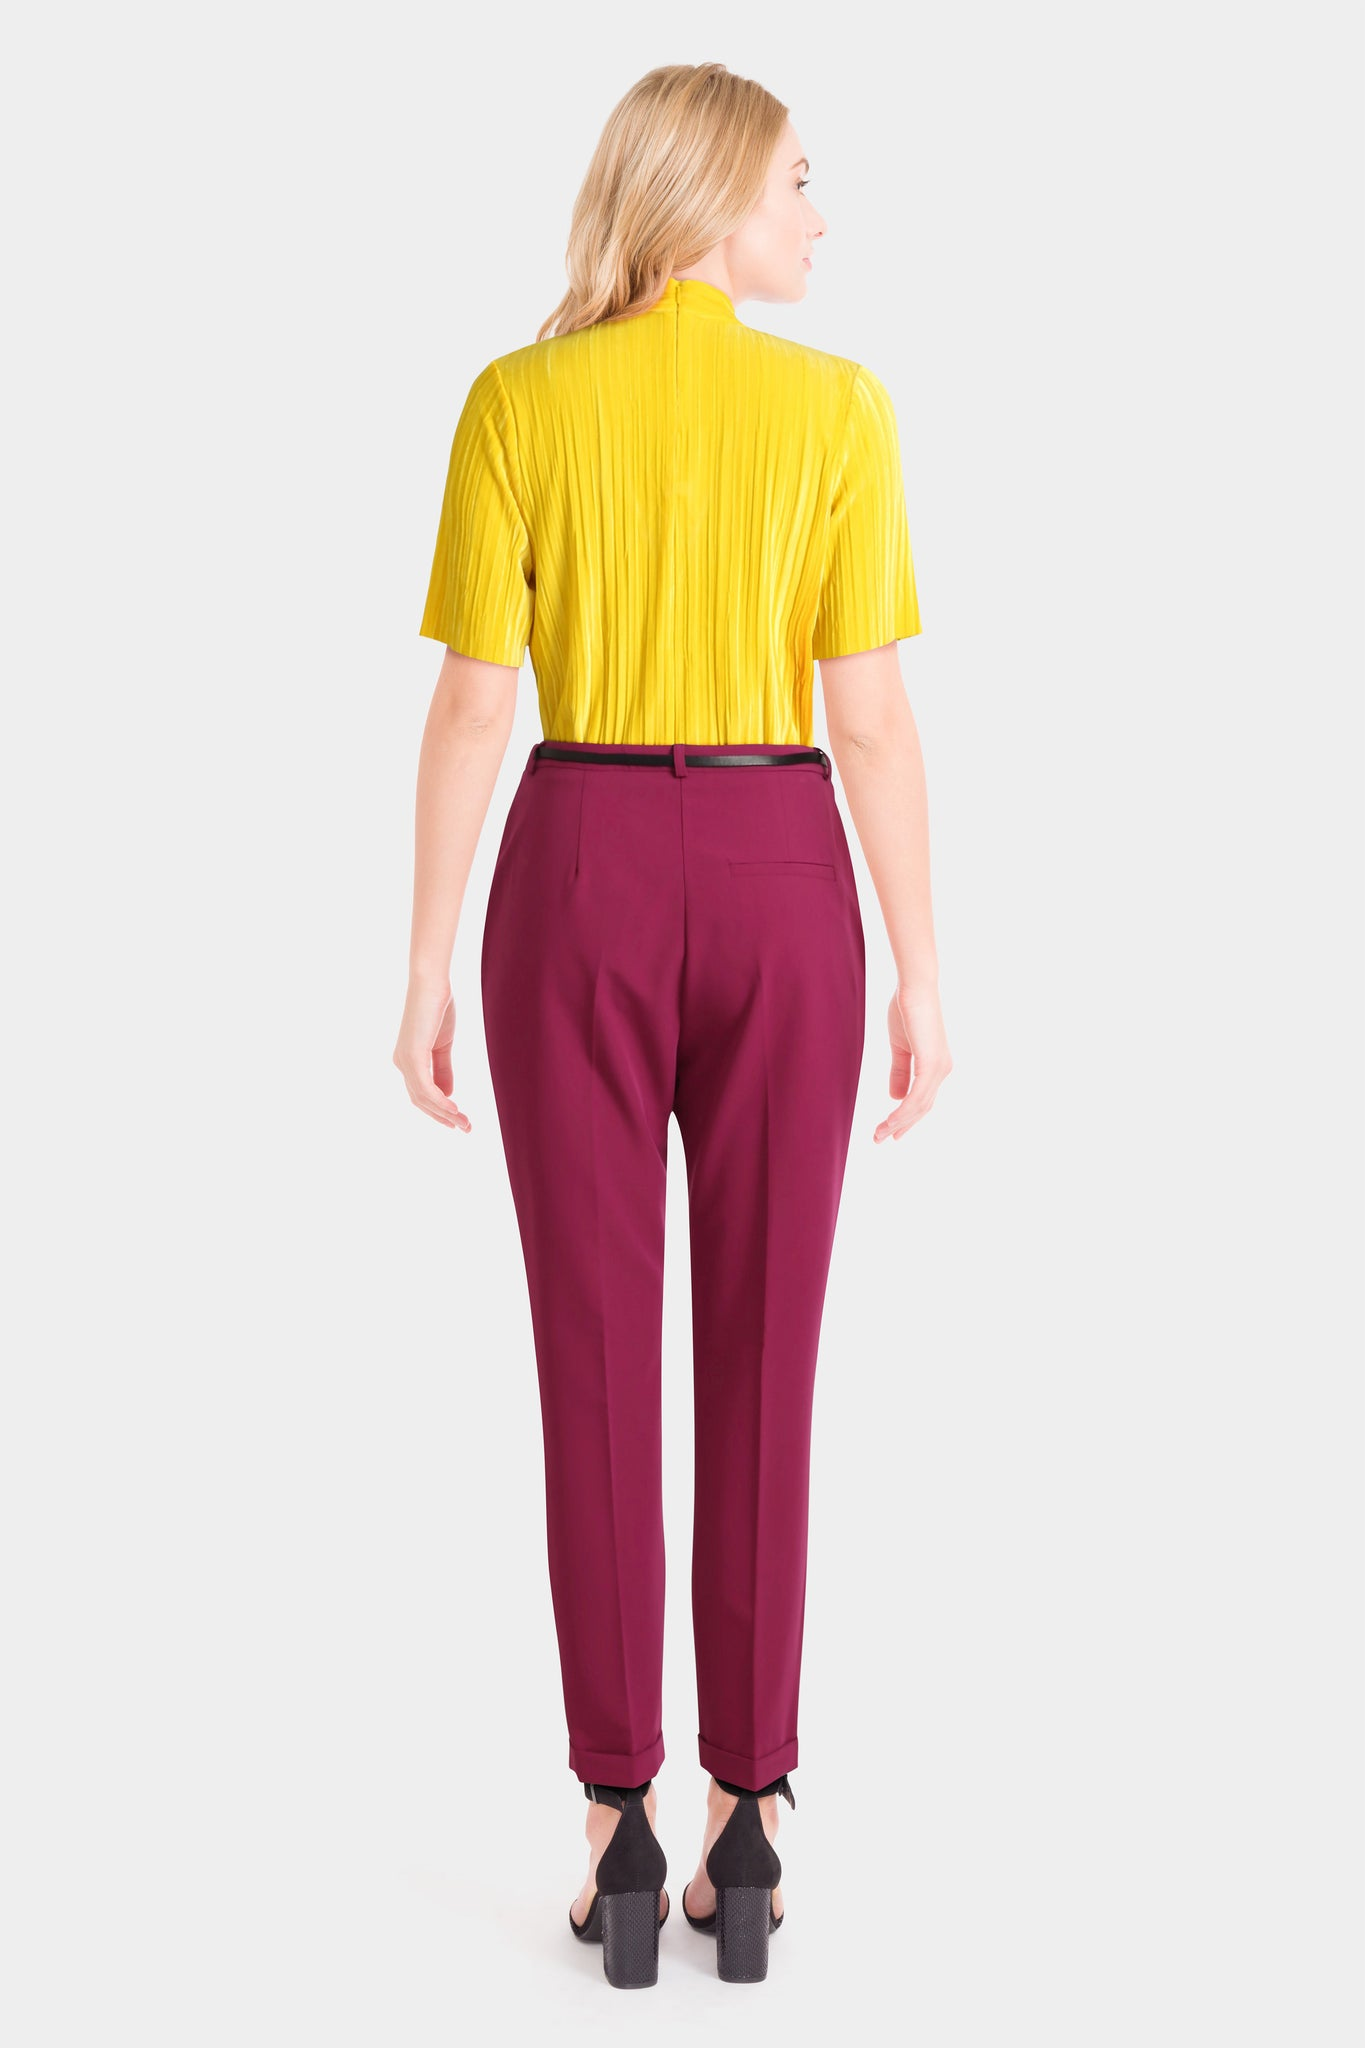 Velvet Choker Top & Cigarette Trousers With Belt